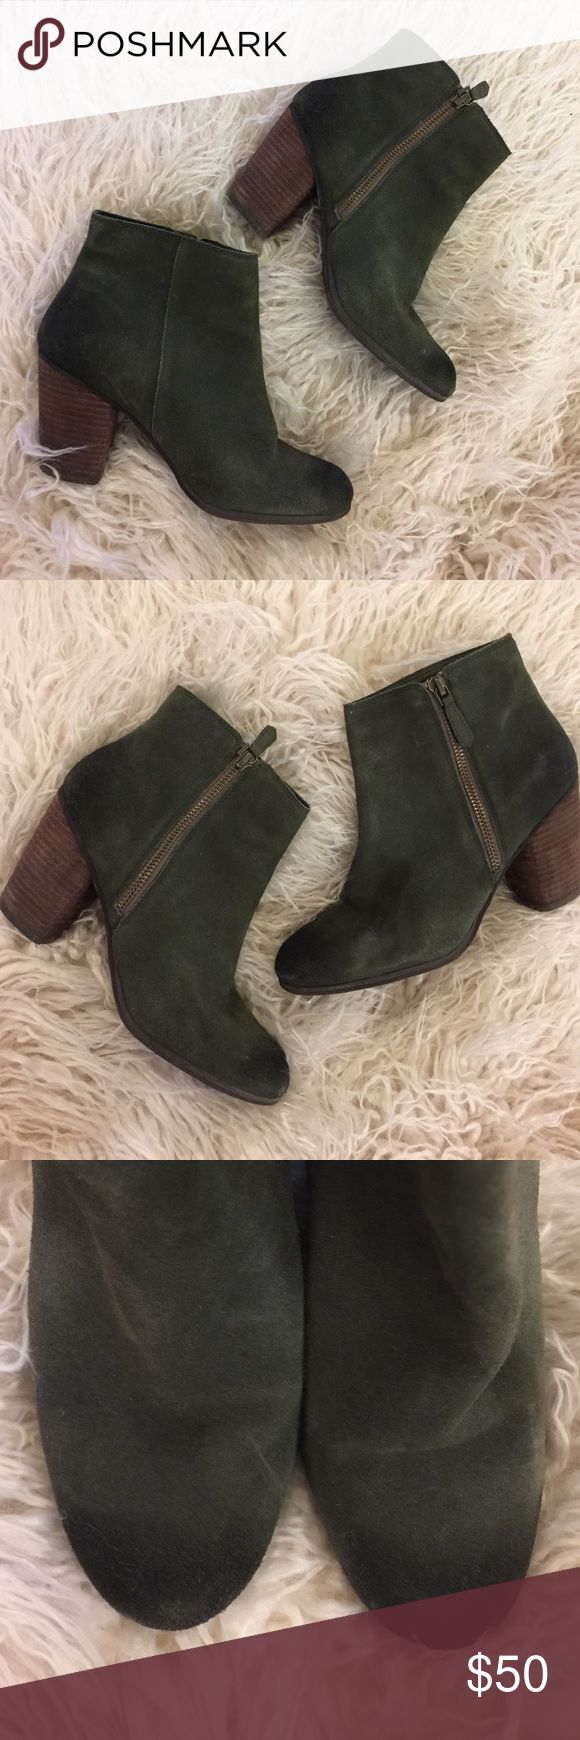 "Nordstrom Deep Green Booties size 7 Love this color! Just haven't worn all season so must purge and find a new home for these beauties. Fits true to size. 3.5"" heel. Can wear for hours. Slight wear. bp Shoes Ankle Boots & Booties"